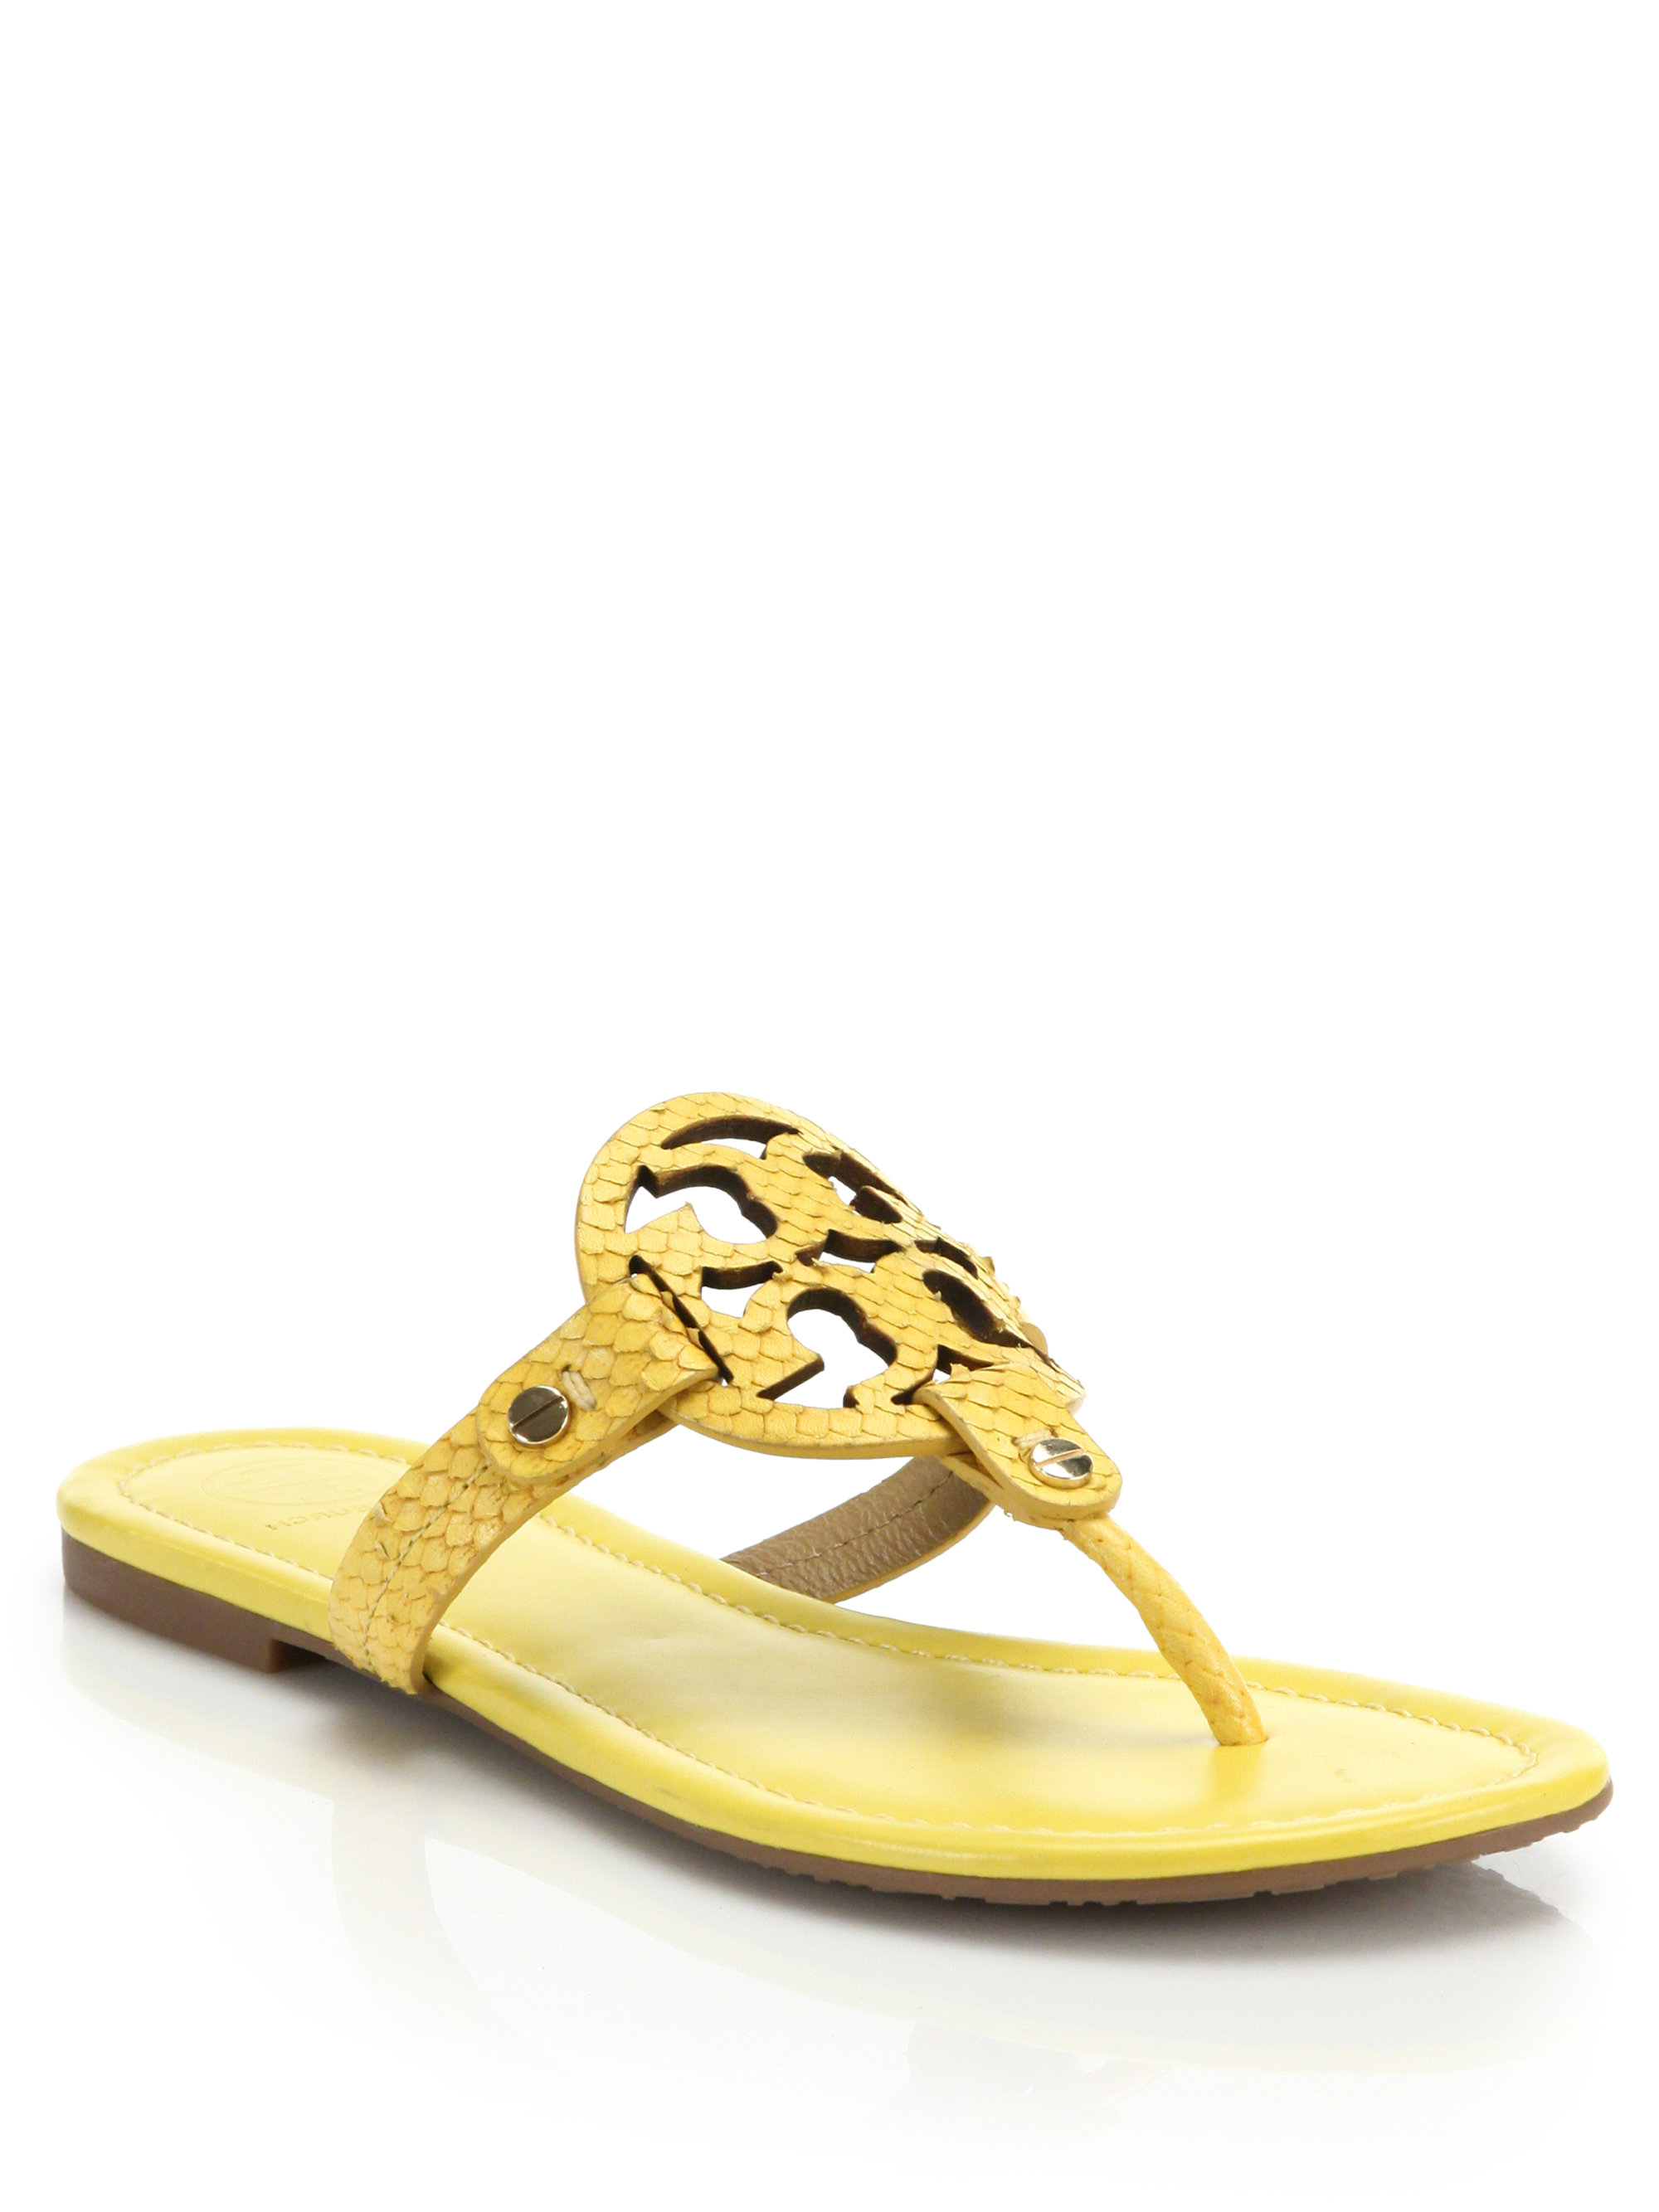 free shipping cheap Tory Burch Embossed Thong Wedges free shipping affordable comfortable sale online 0lREkP